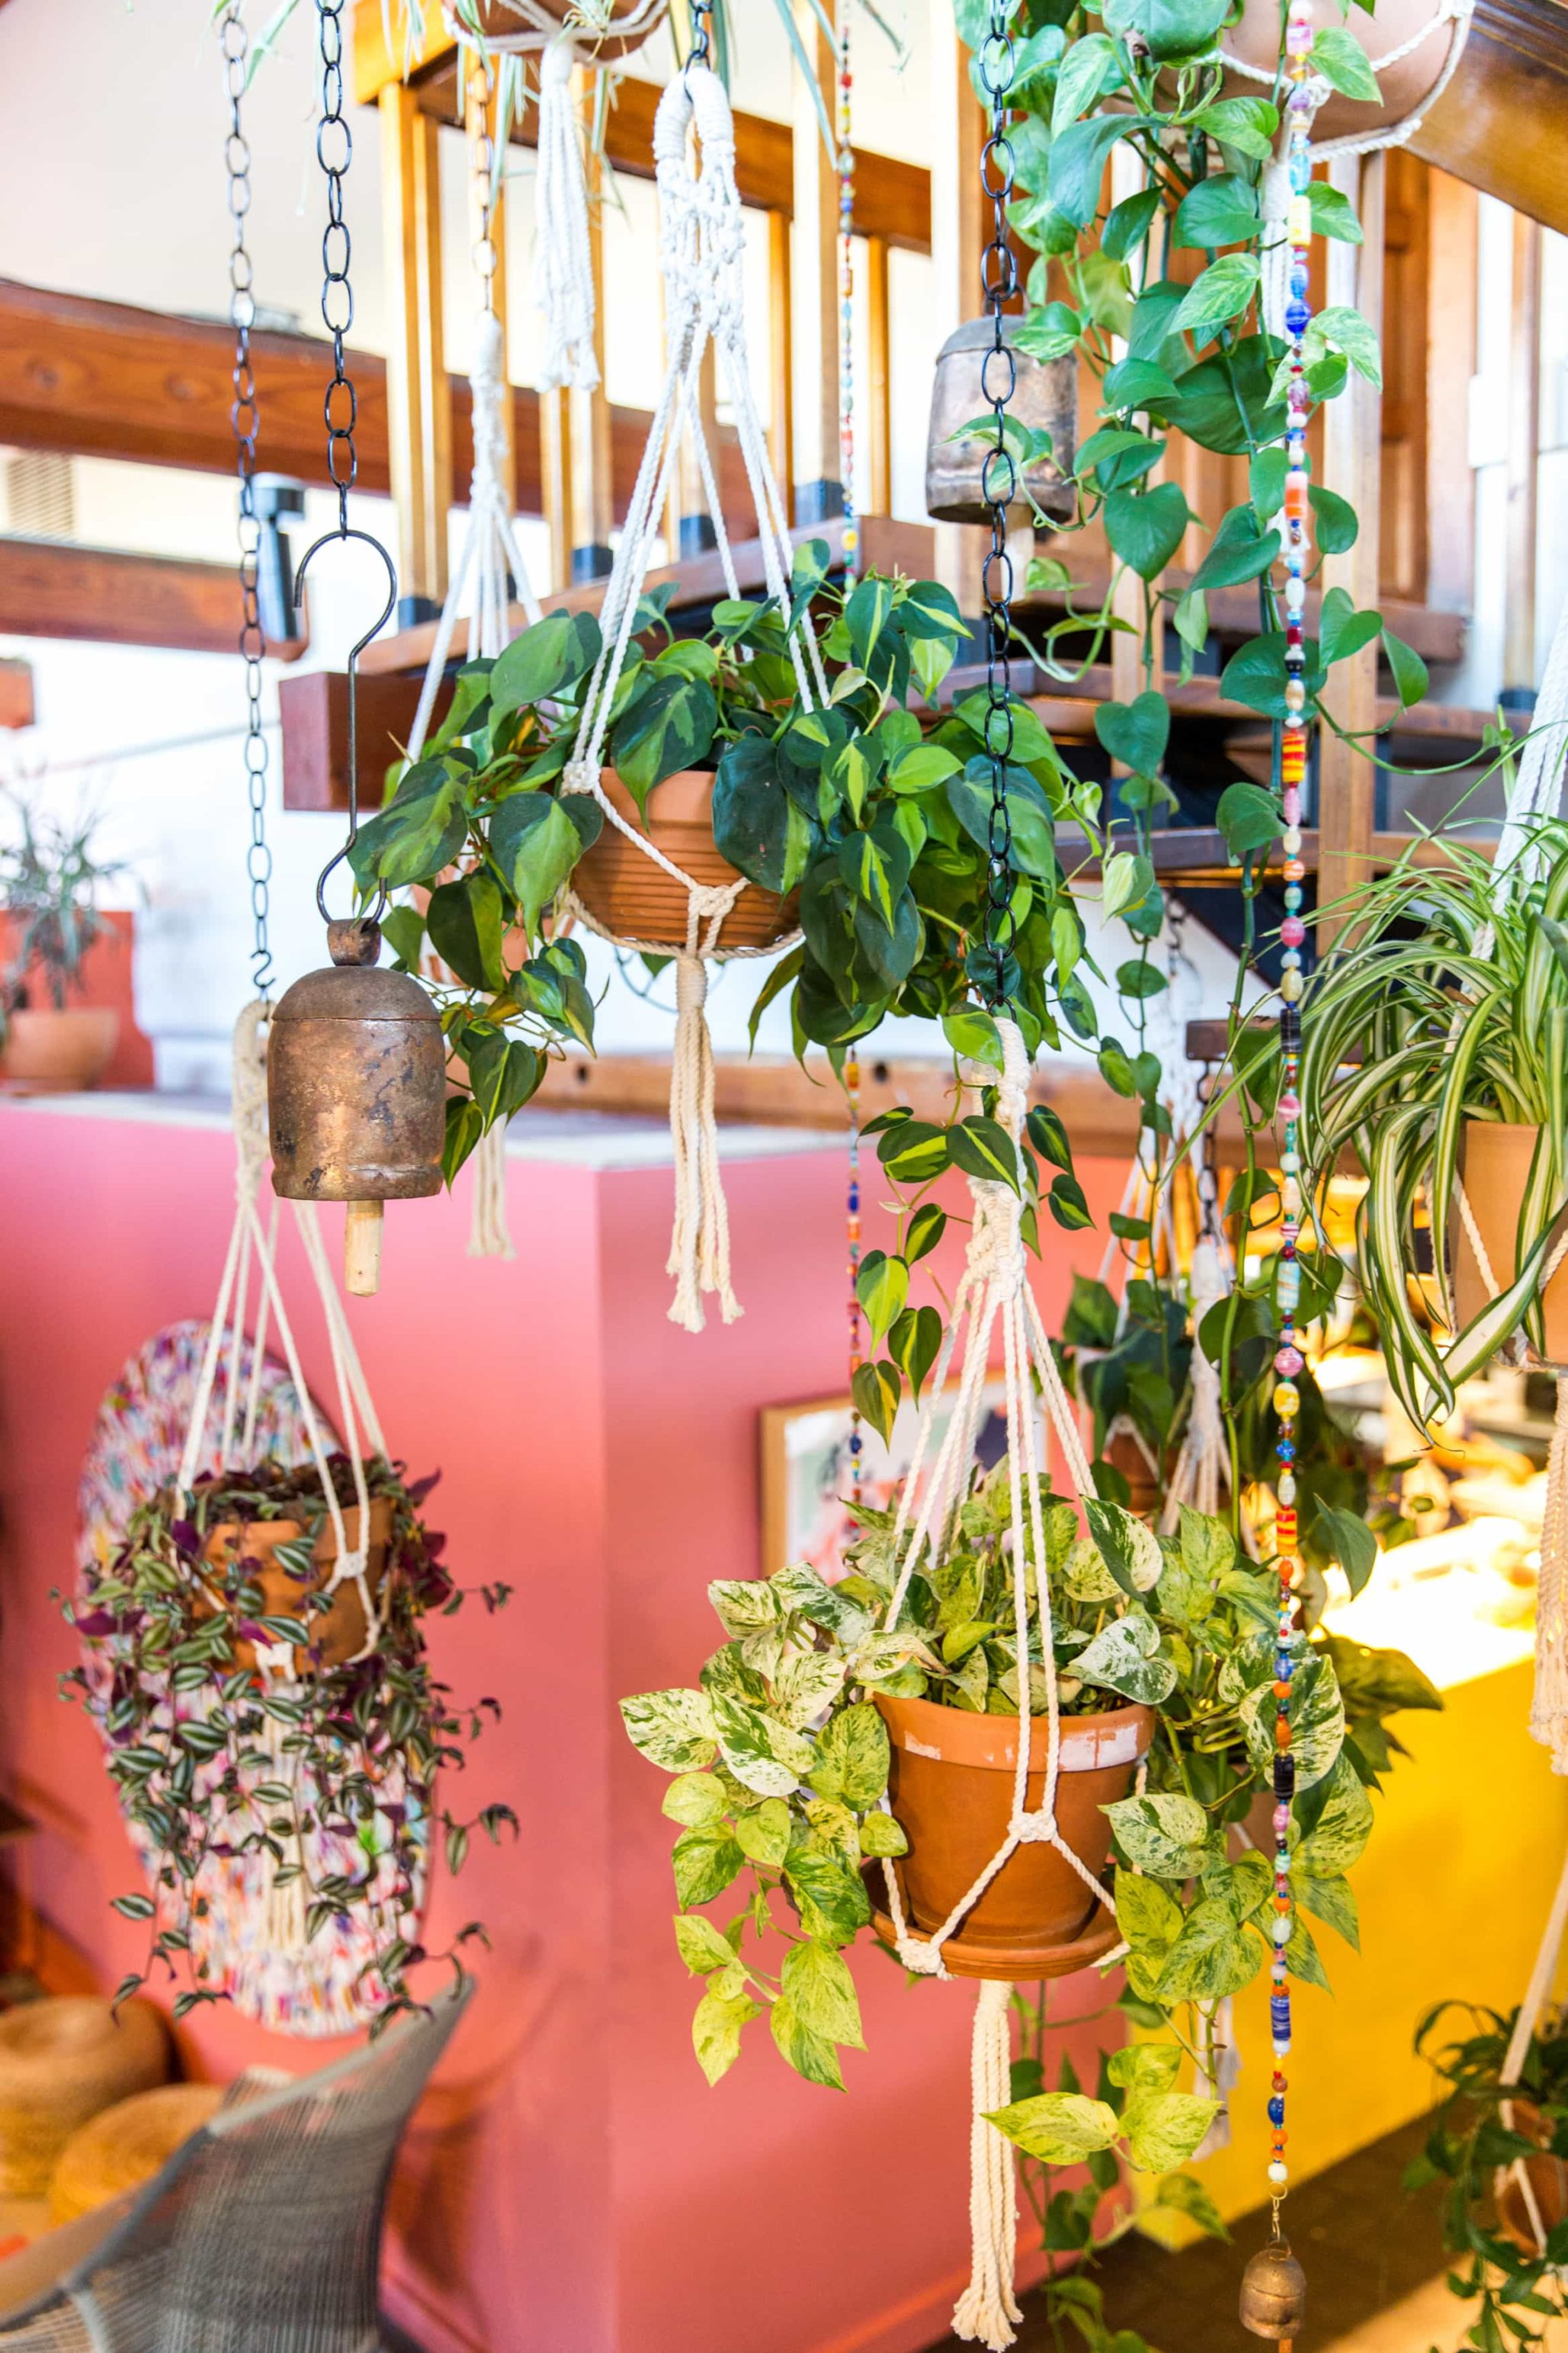 Hanging plants along staircase